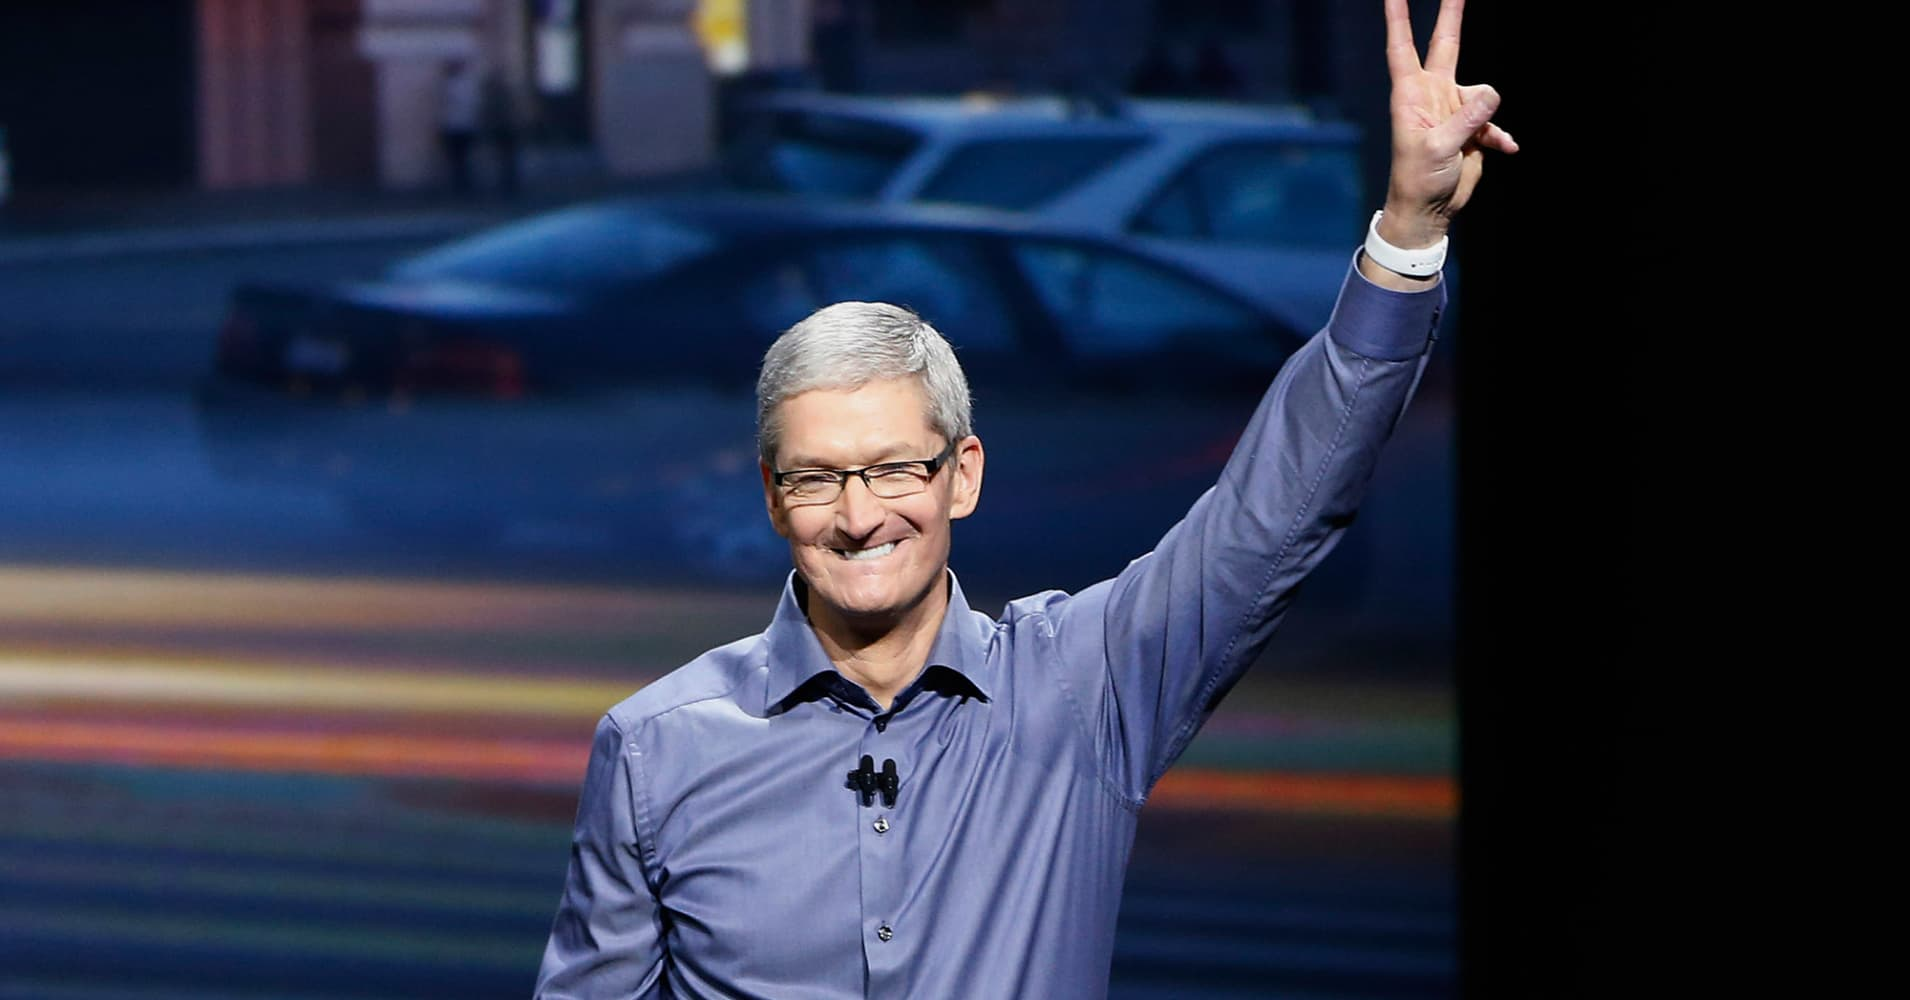 Apple will give $2 million for Charlottesville. Here's how much Tim Cook has donated to human rights